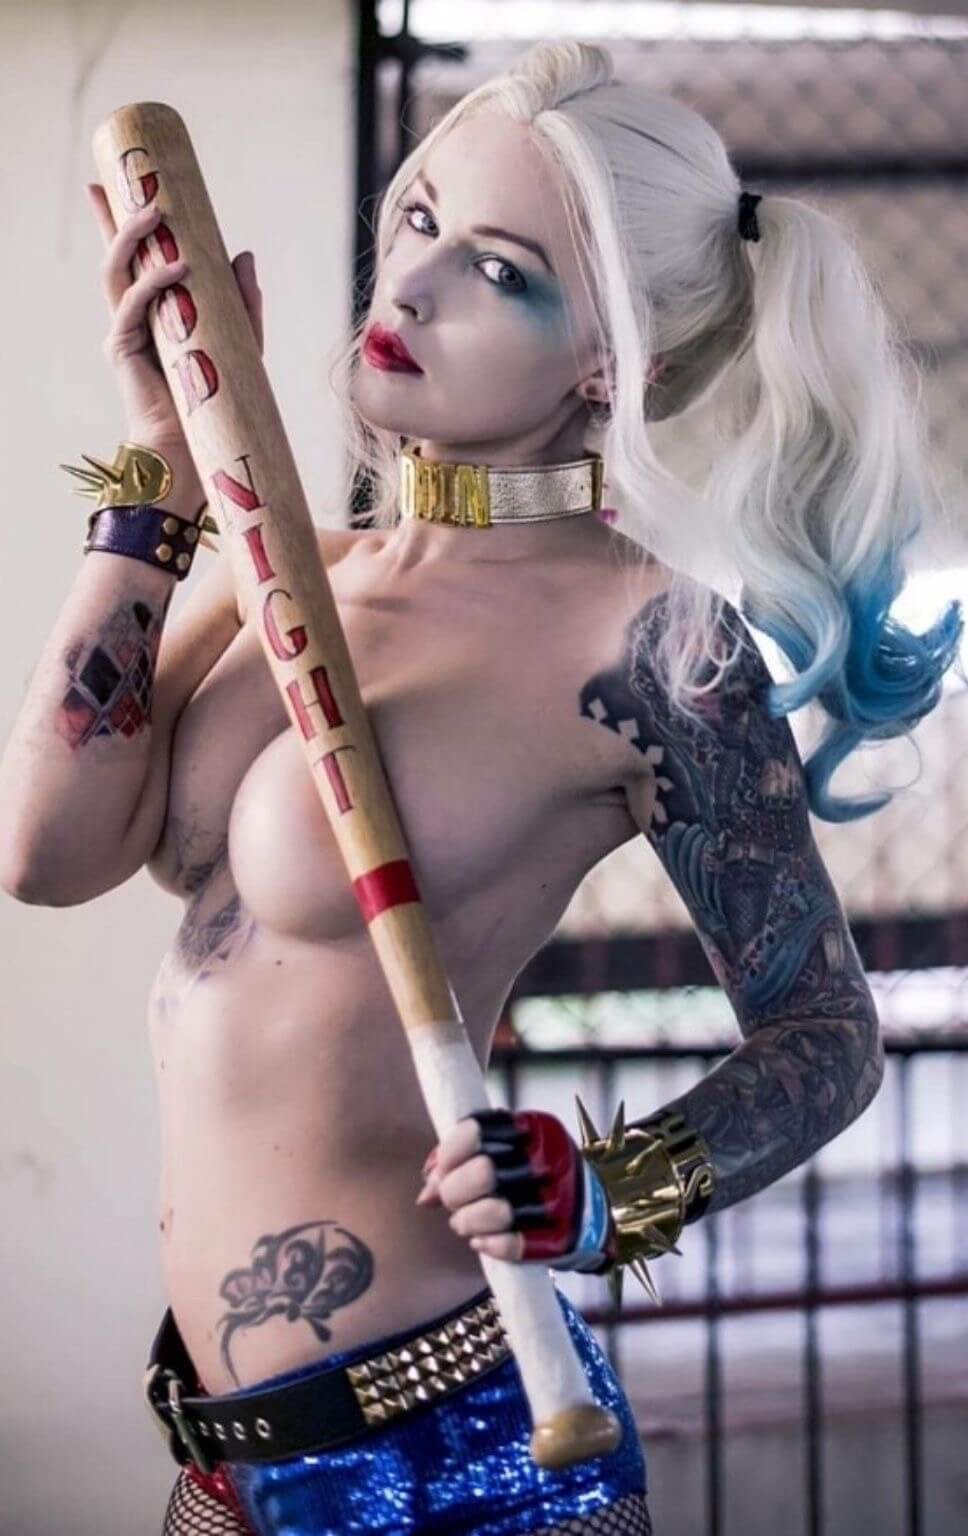 harley quinn topless